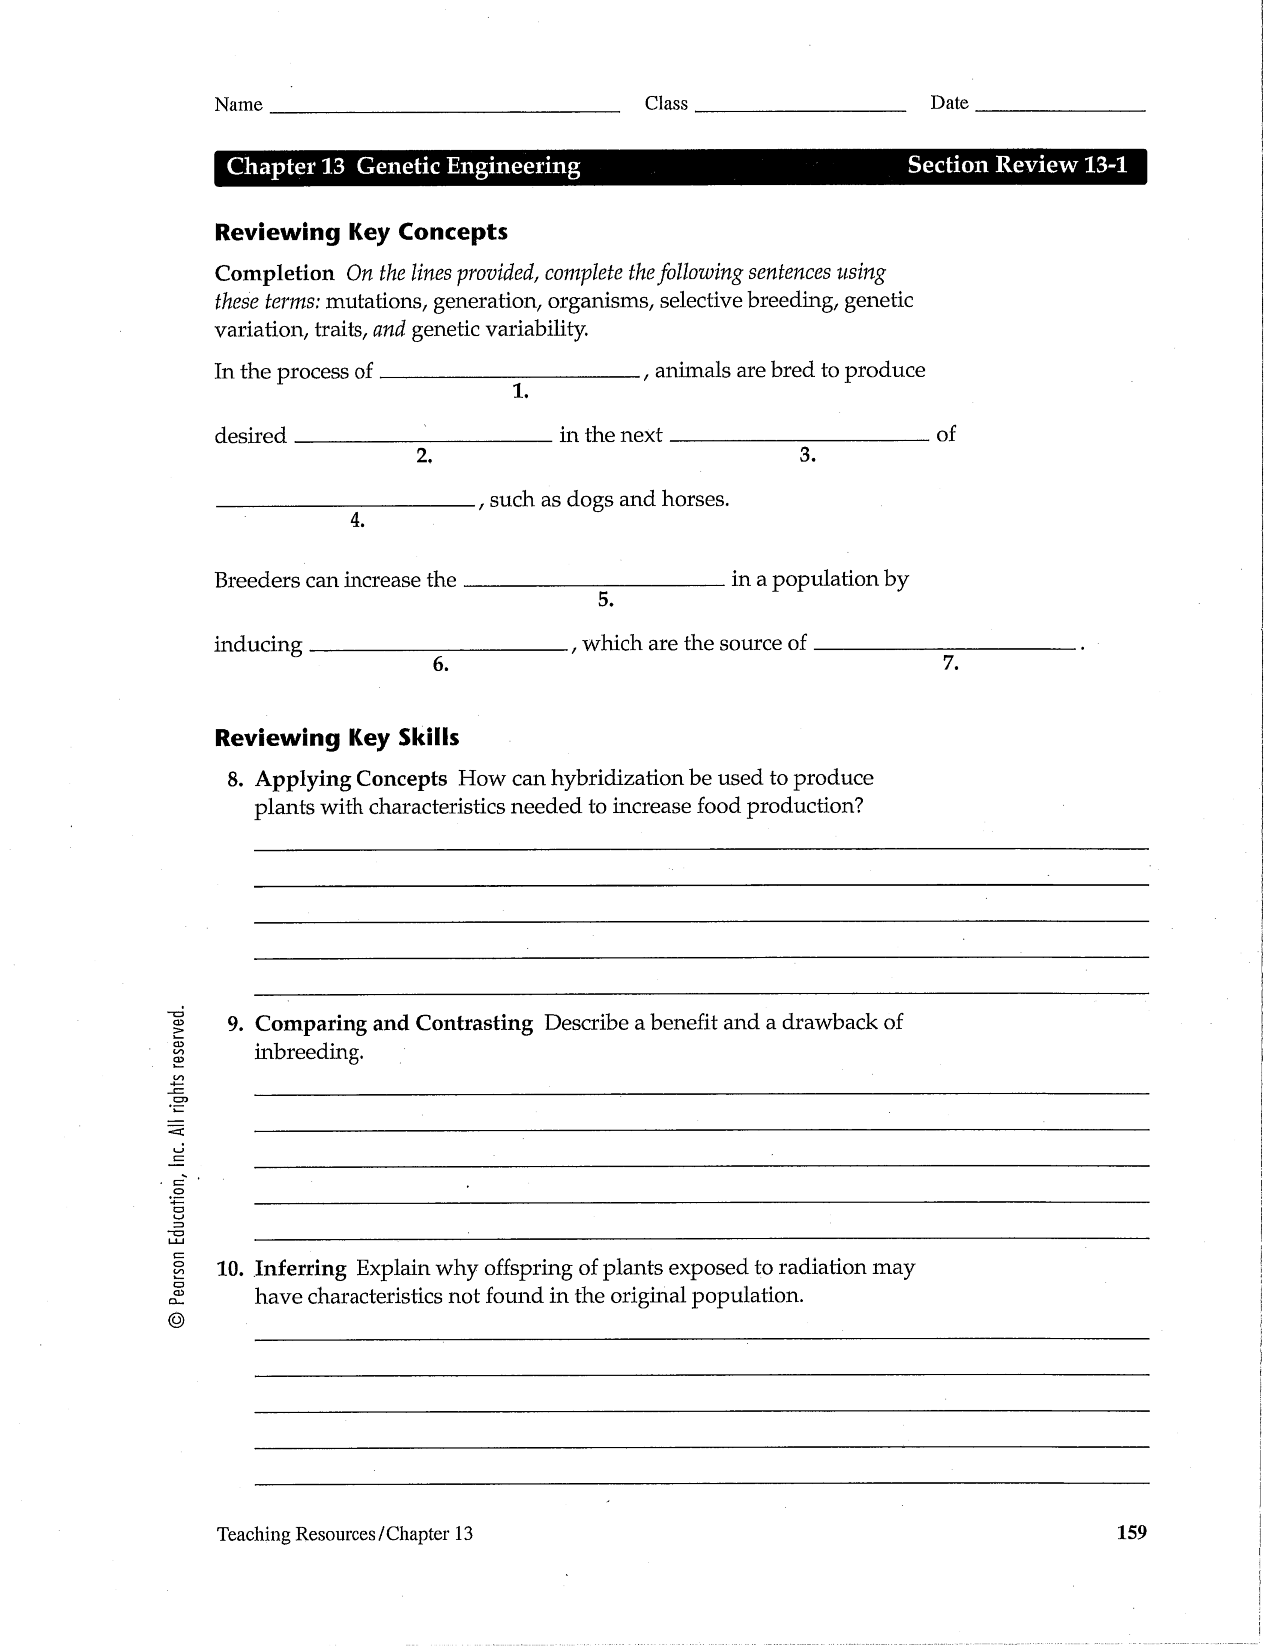 18 Best Images Of Science World Worksheet Answers